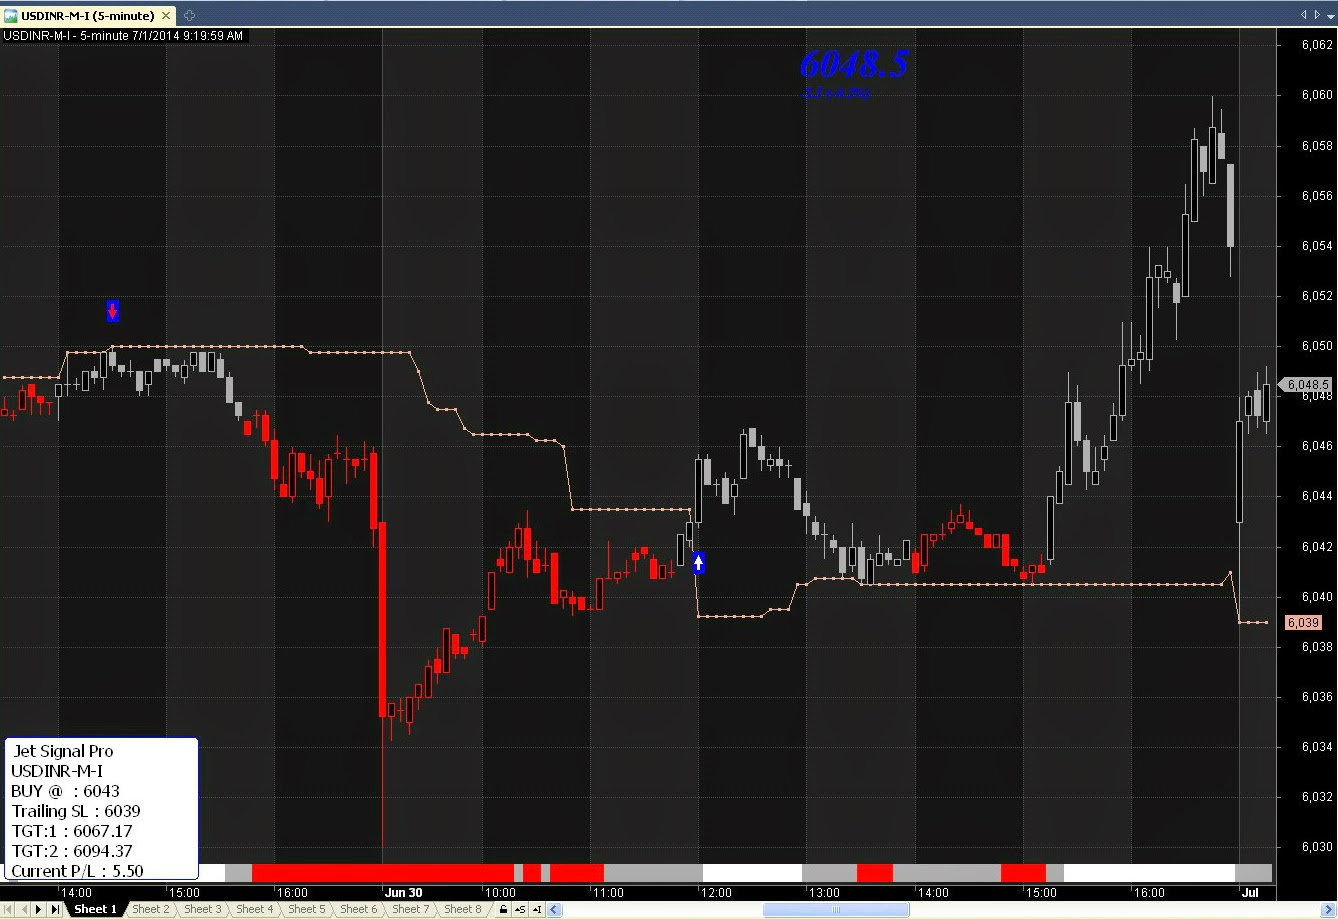 Trading software nse bse